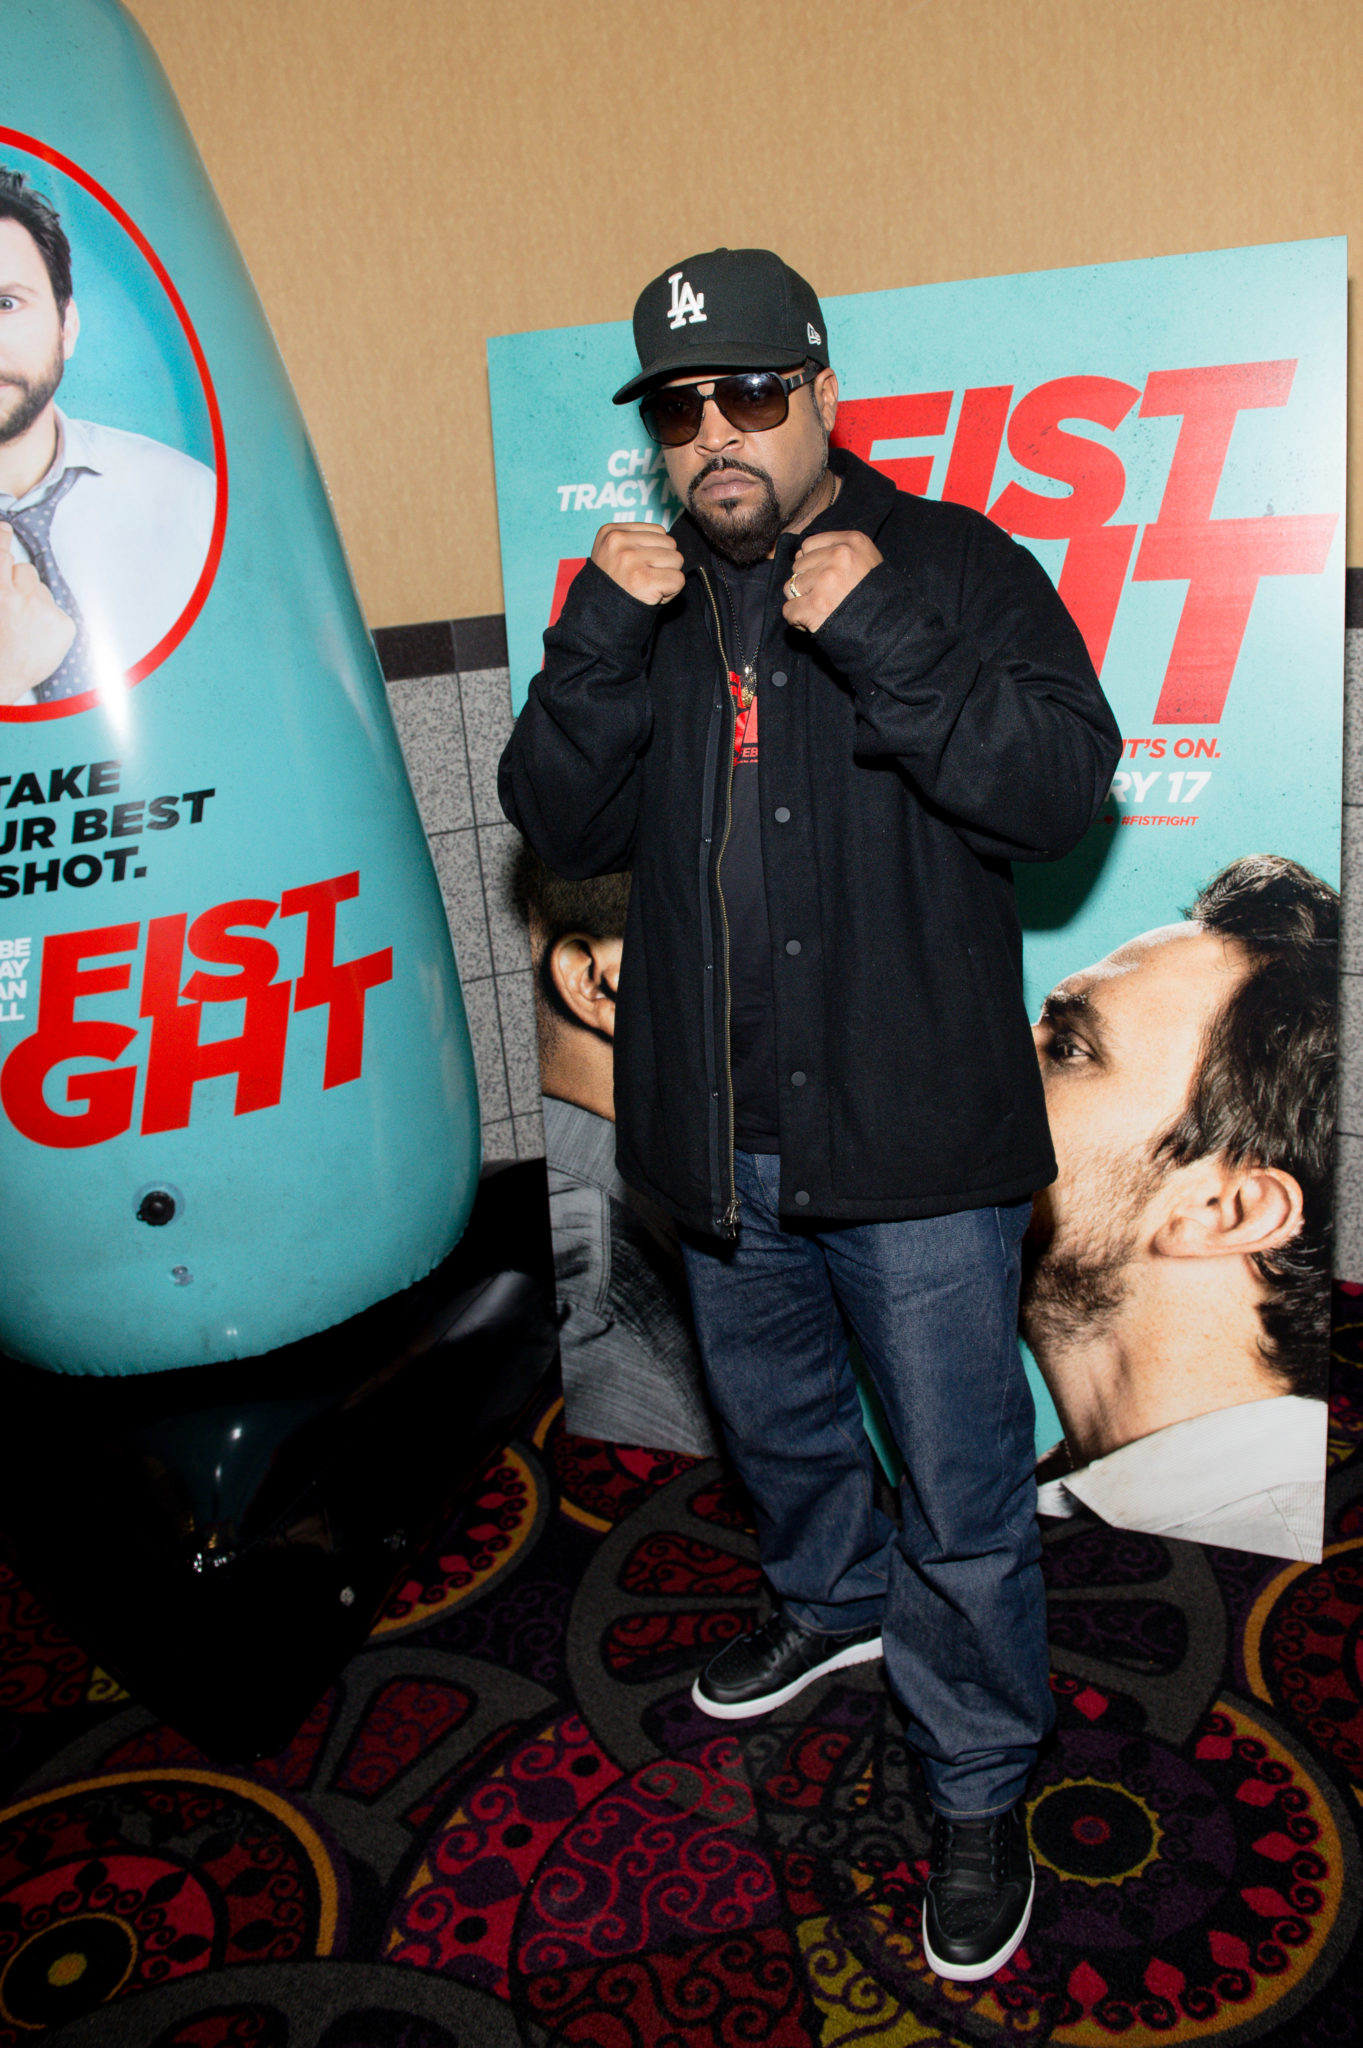 FIST FIGHT Atlanta Private Screening With Ice Cube